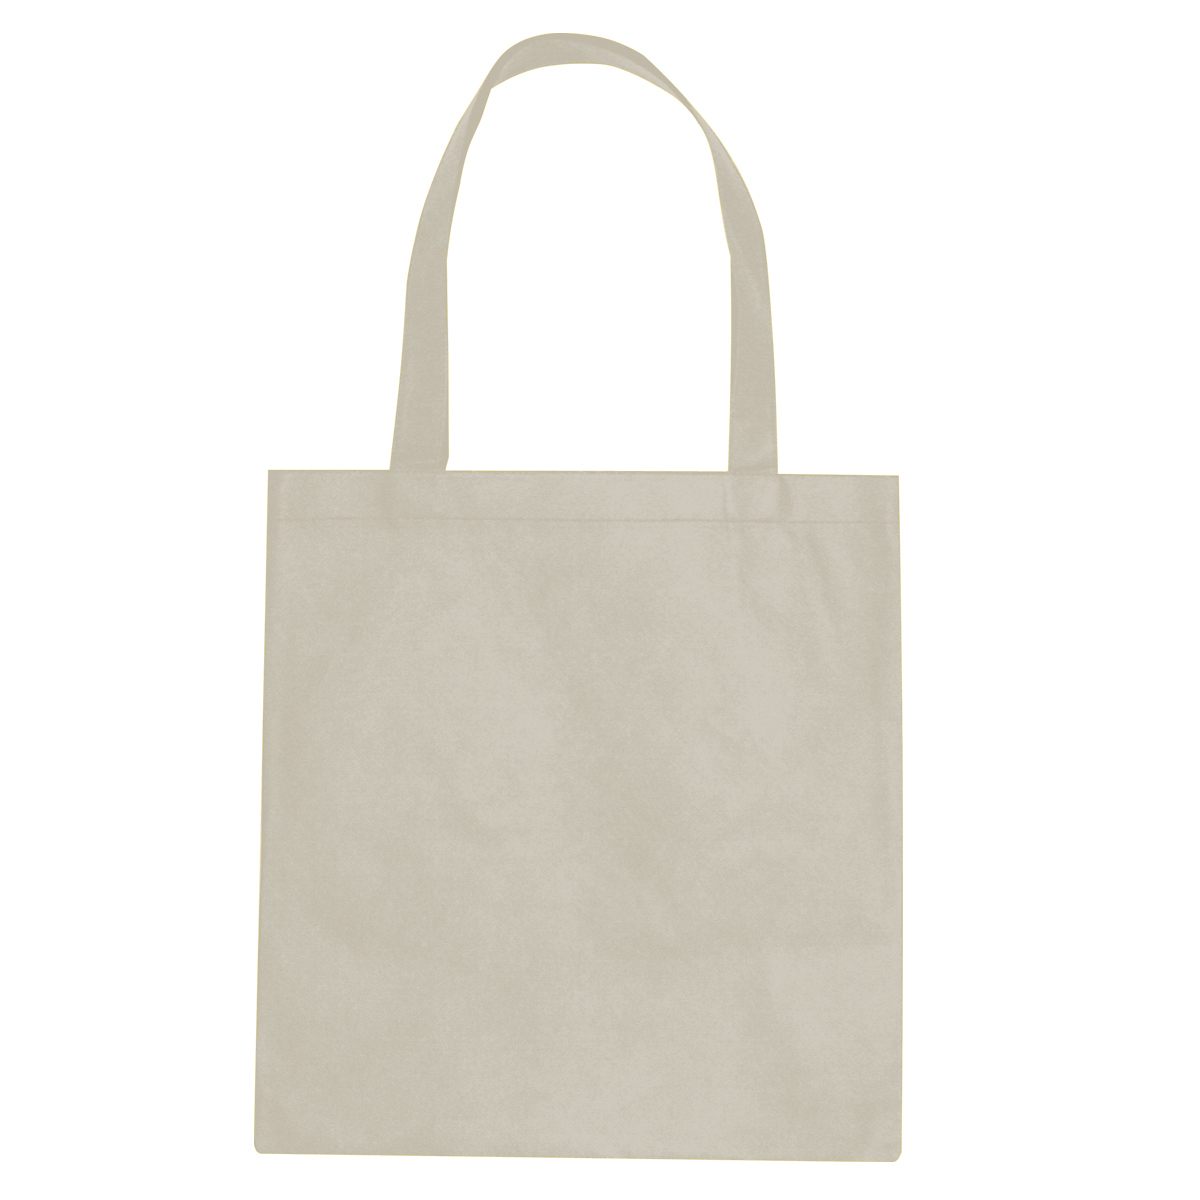 1200x1200 Ivory Design Inspiration Tote Bag Template